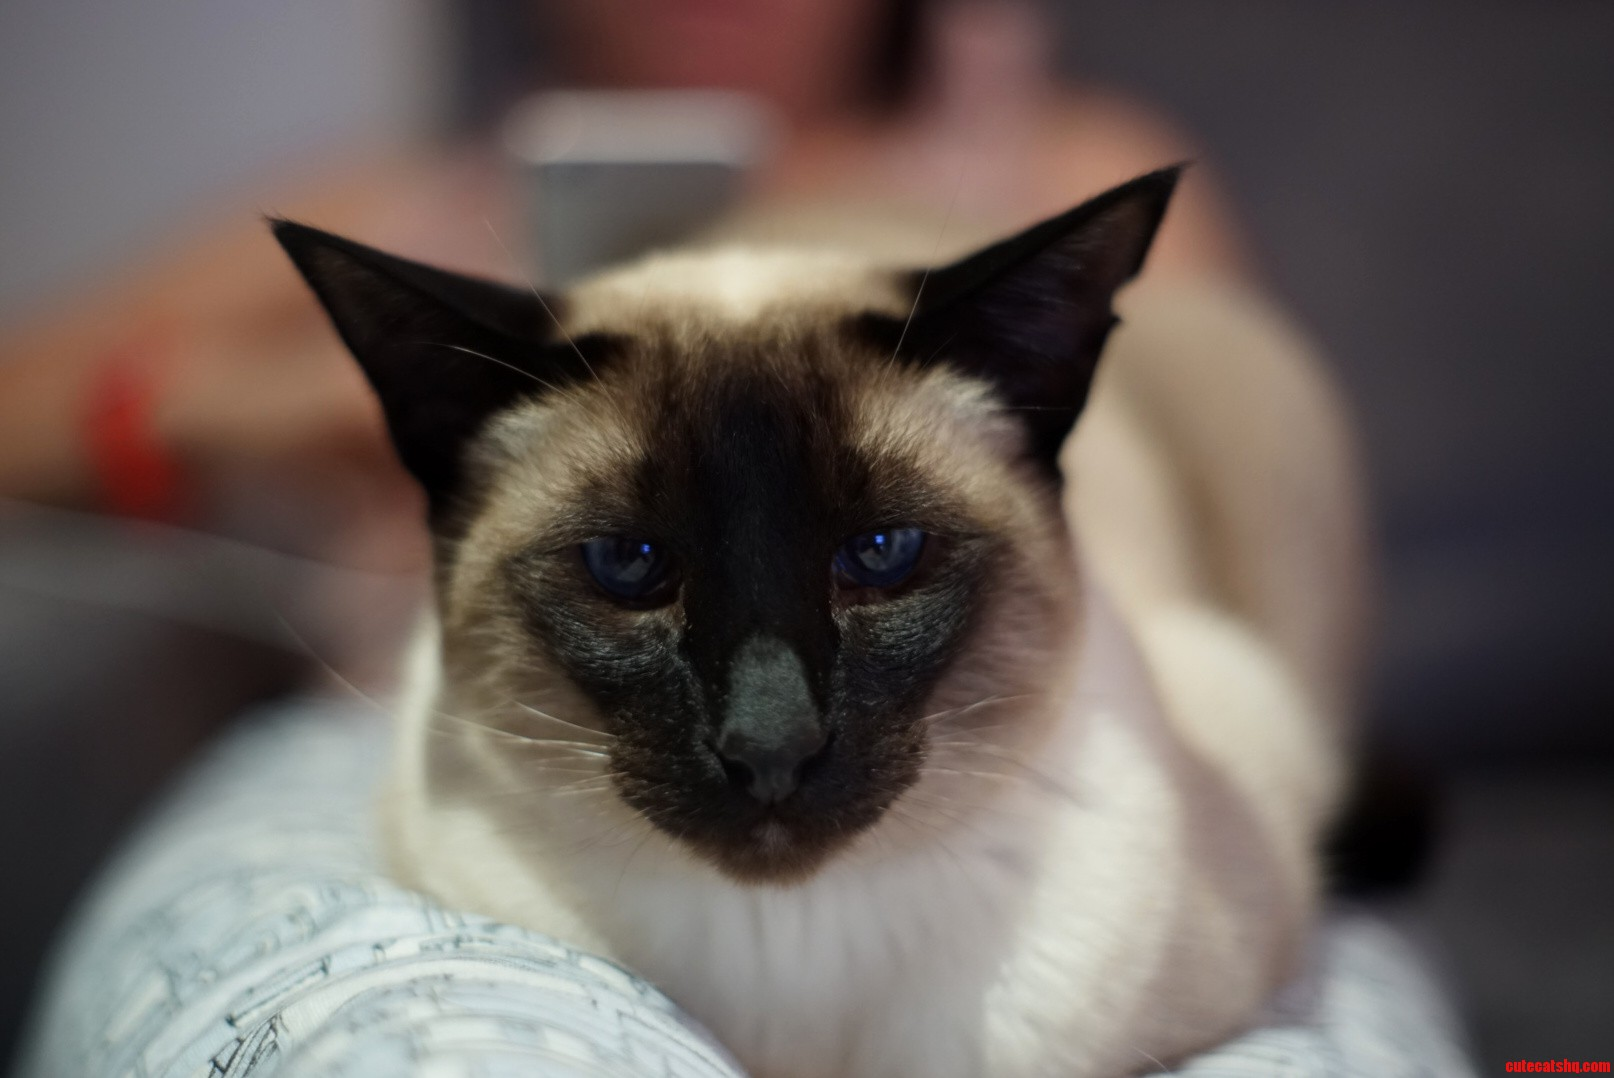 Bought some cheap old lenses to try on my camera and tested it on my siamese.